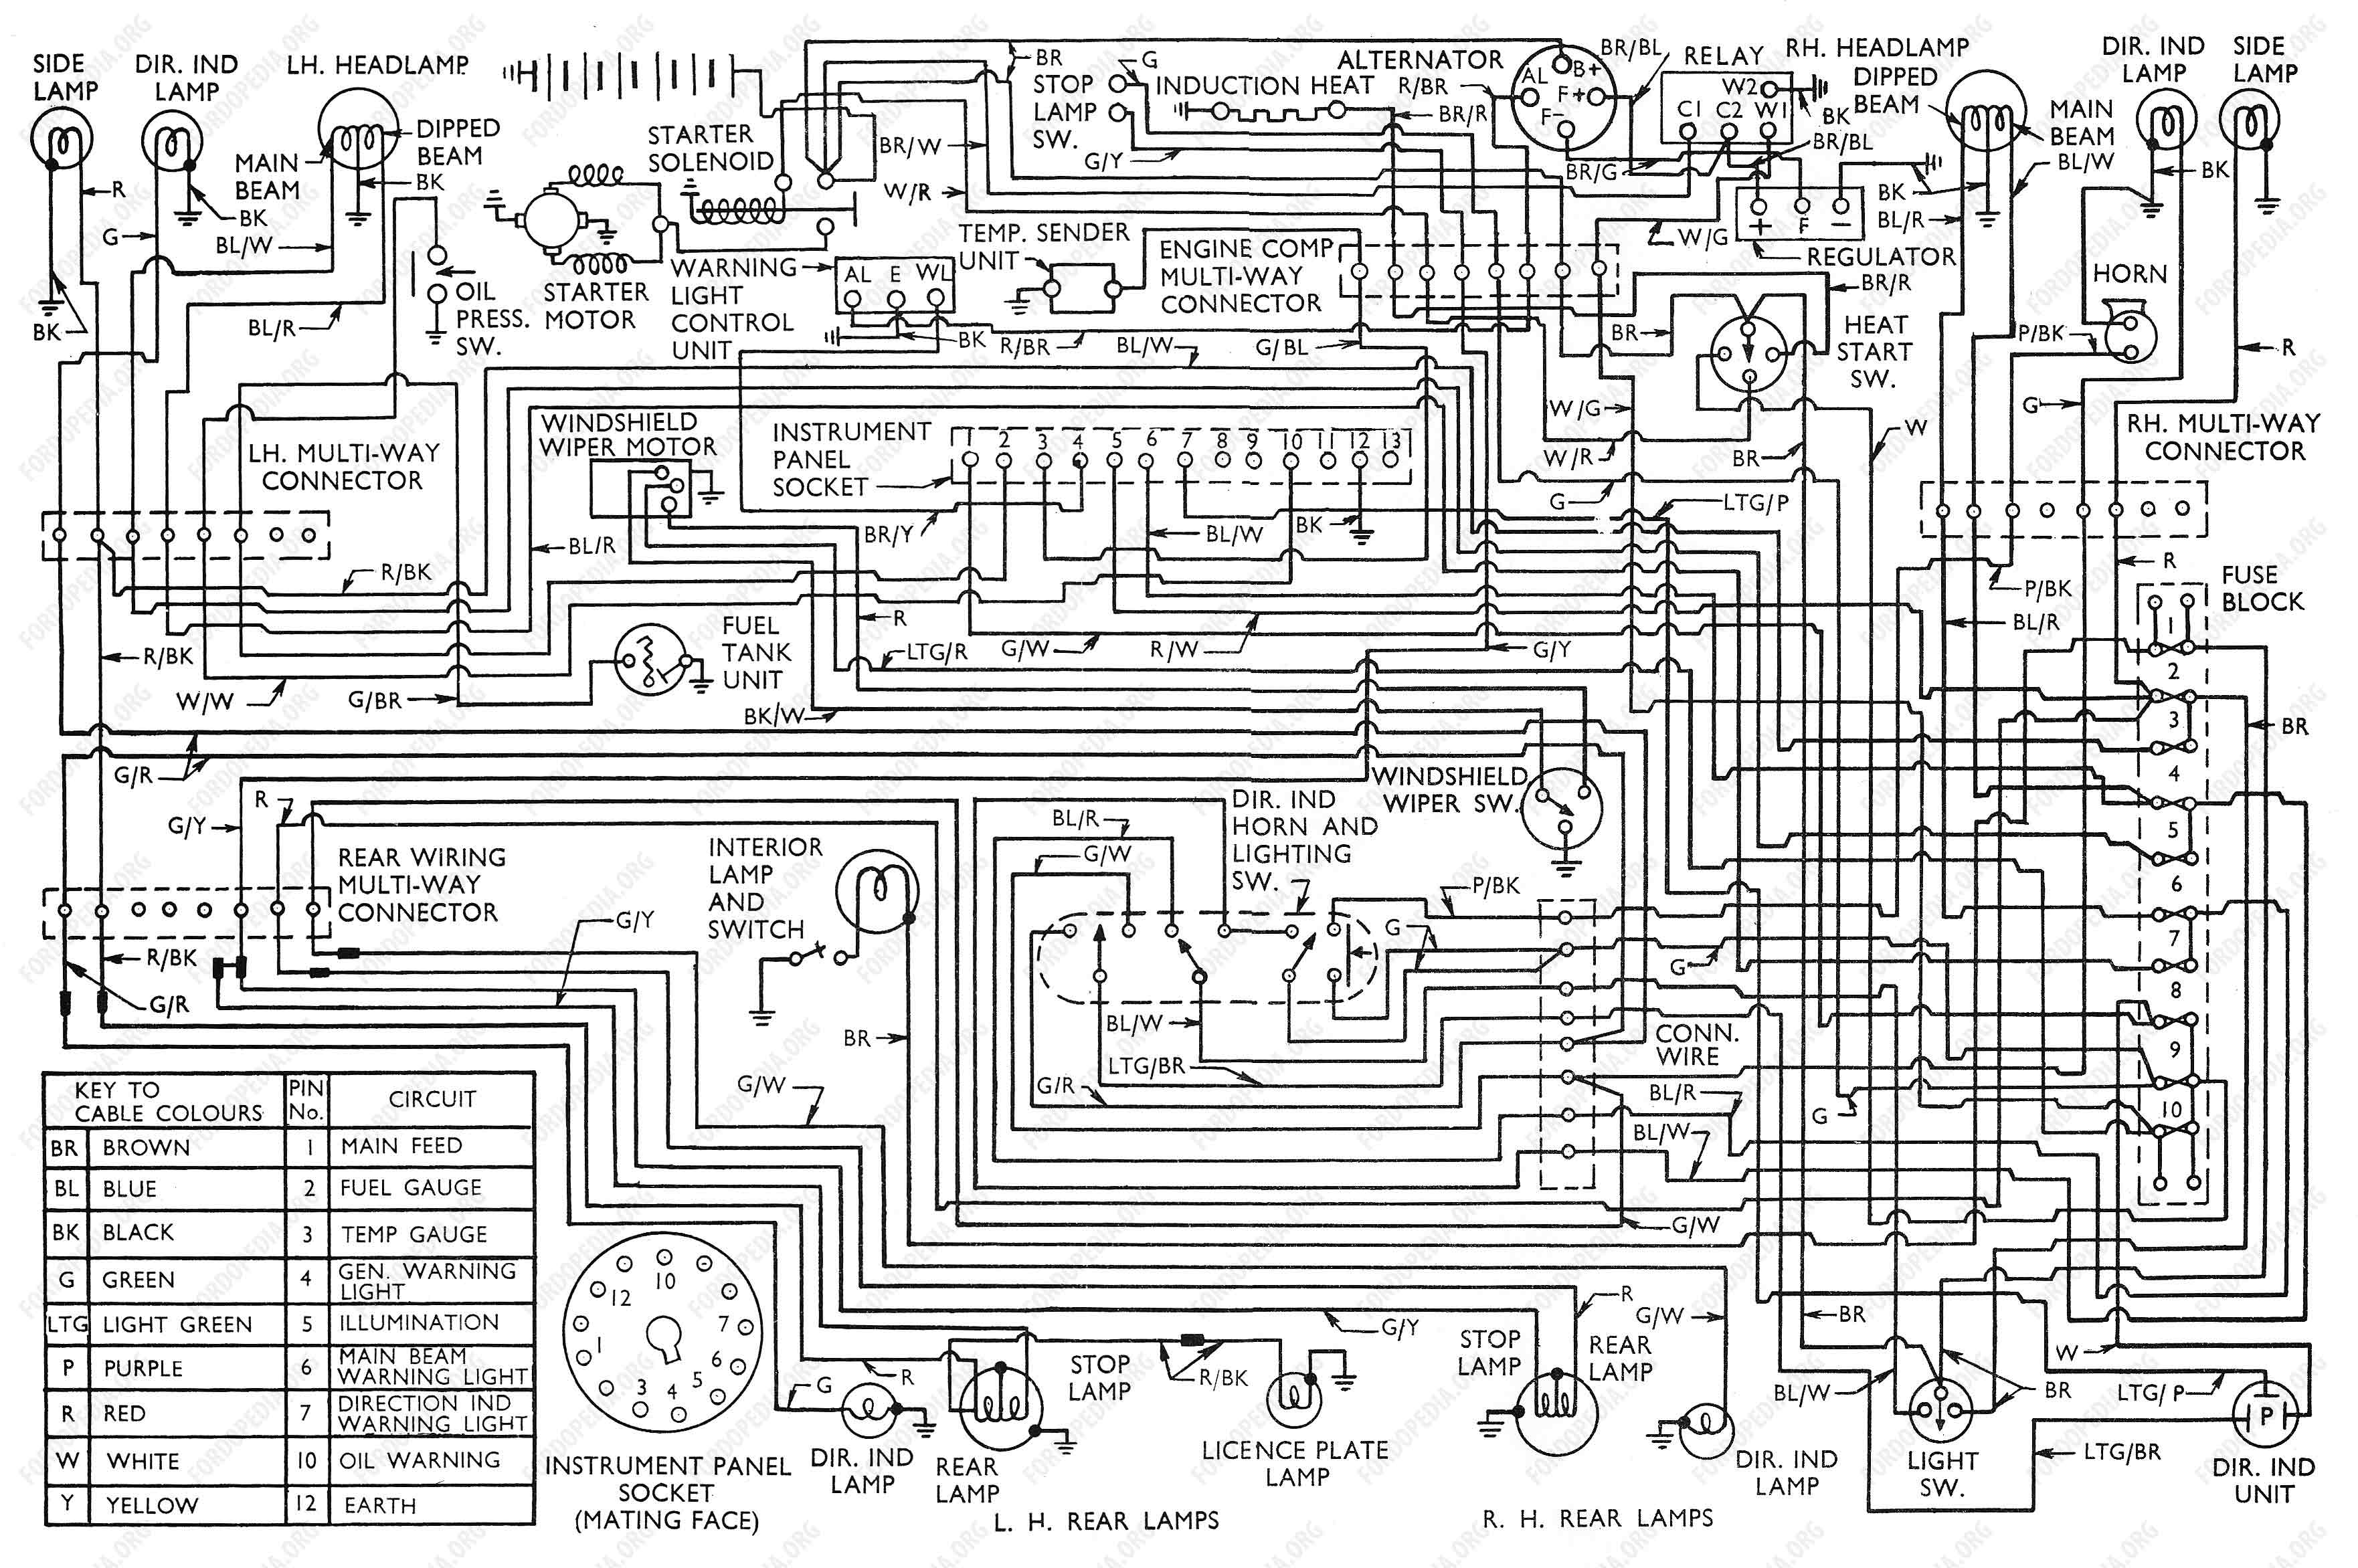 wiring diagram diesel fordopedia org engine wiring diagram at crackthecode.co